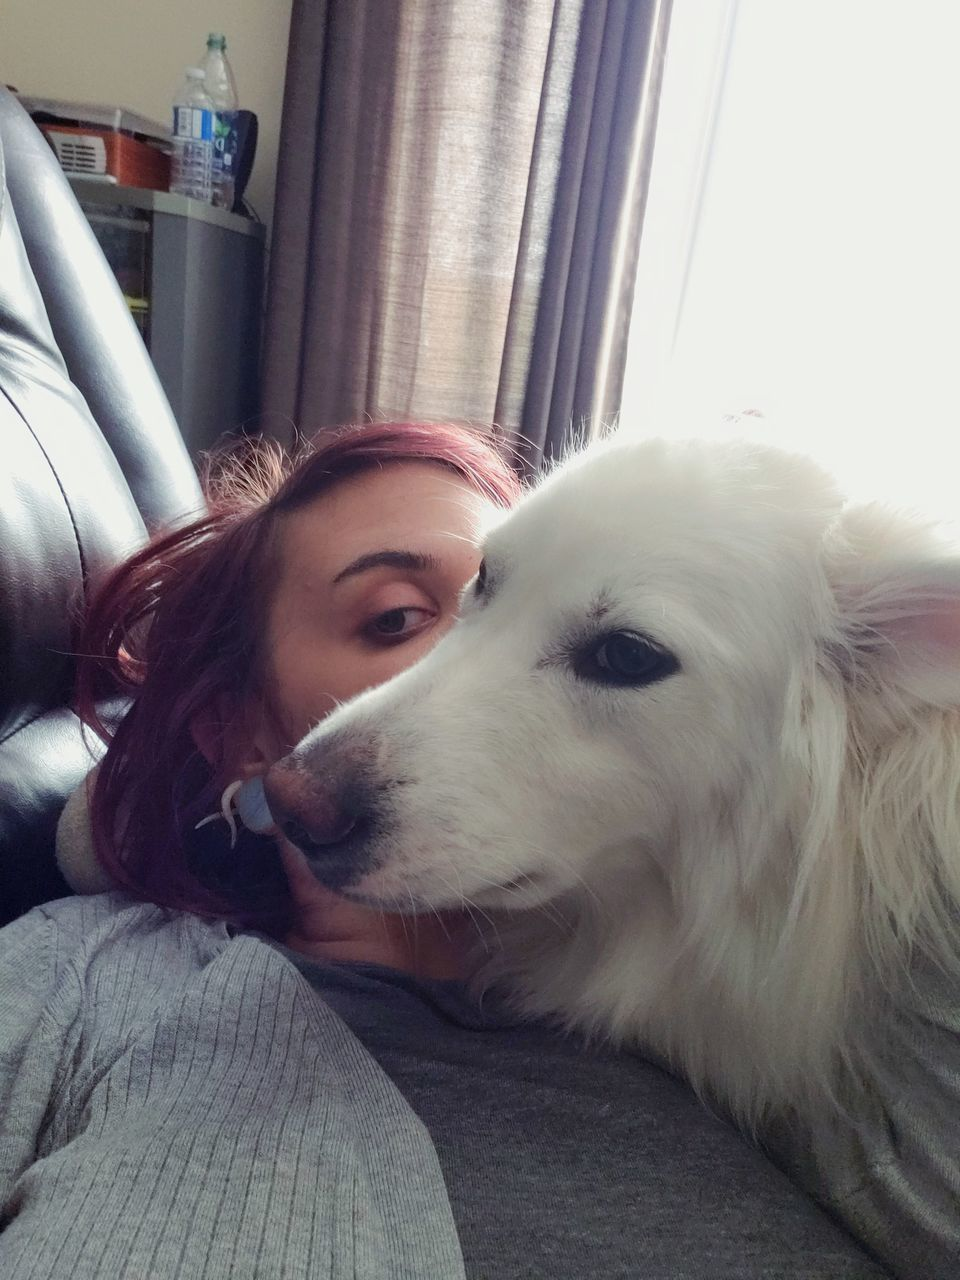 pets, domestic, domestic animals, mammal, one animal, dog, canine, one person, real people, young adult, young women, vertebrate, home interior, lifestyles, headshot, indoors, leisure activity, pet owner, hairstyle